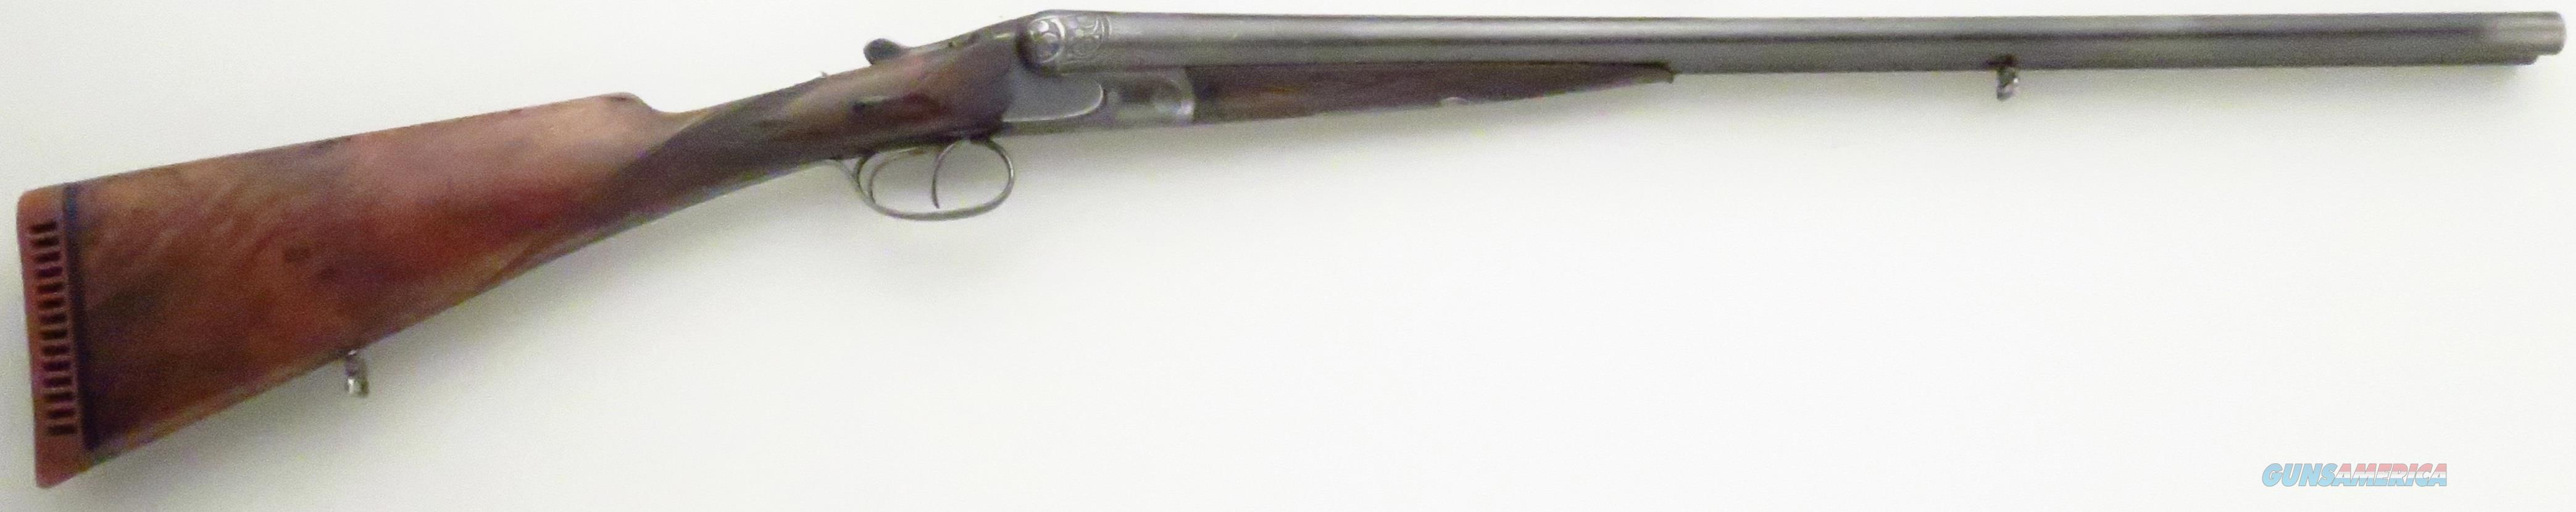 Schmidt & Habermann engraved scalloped boxlock 12 gauge  Guns > Shotguns > Double Shotguns (Misc.)  > German